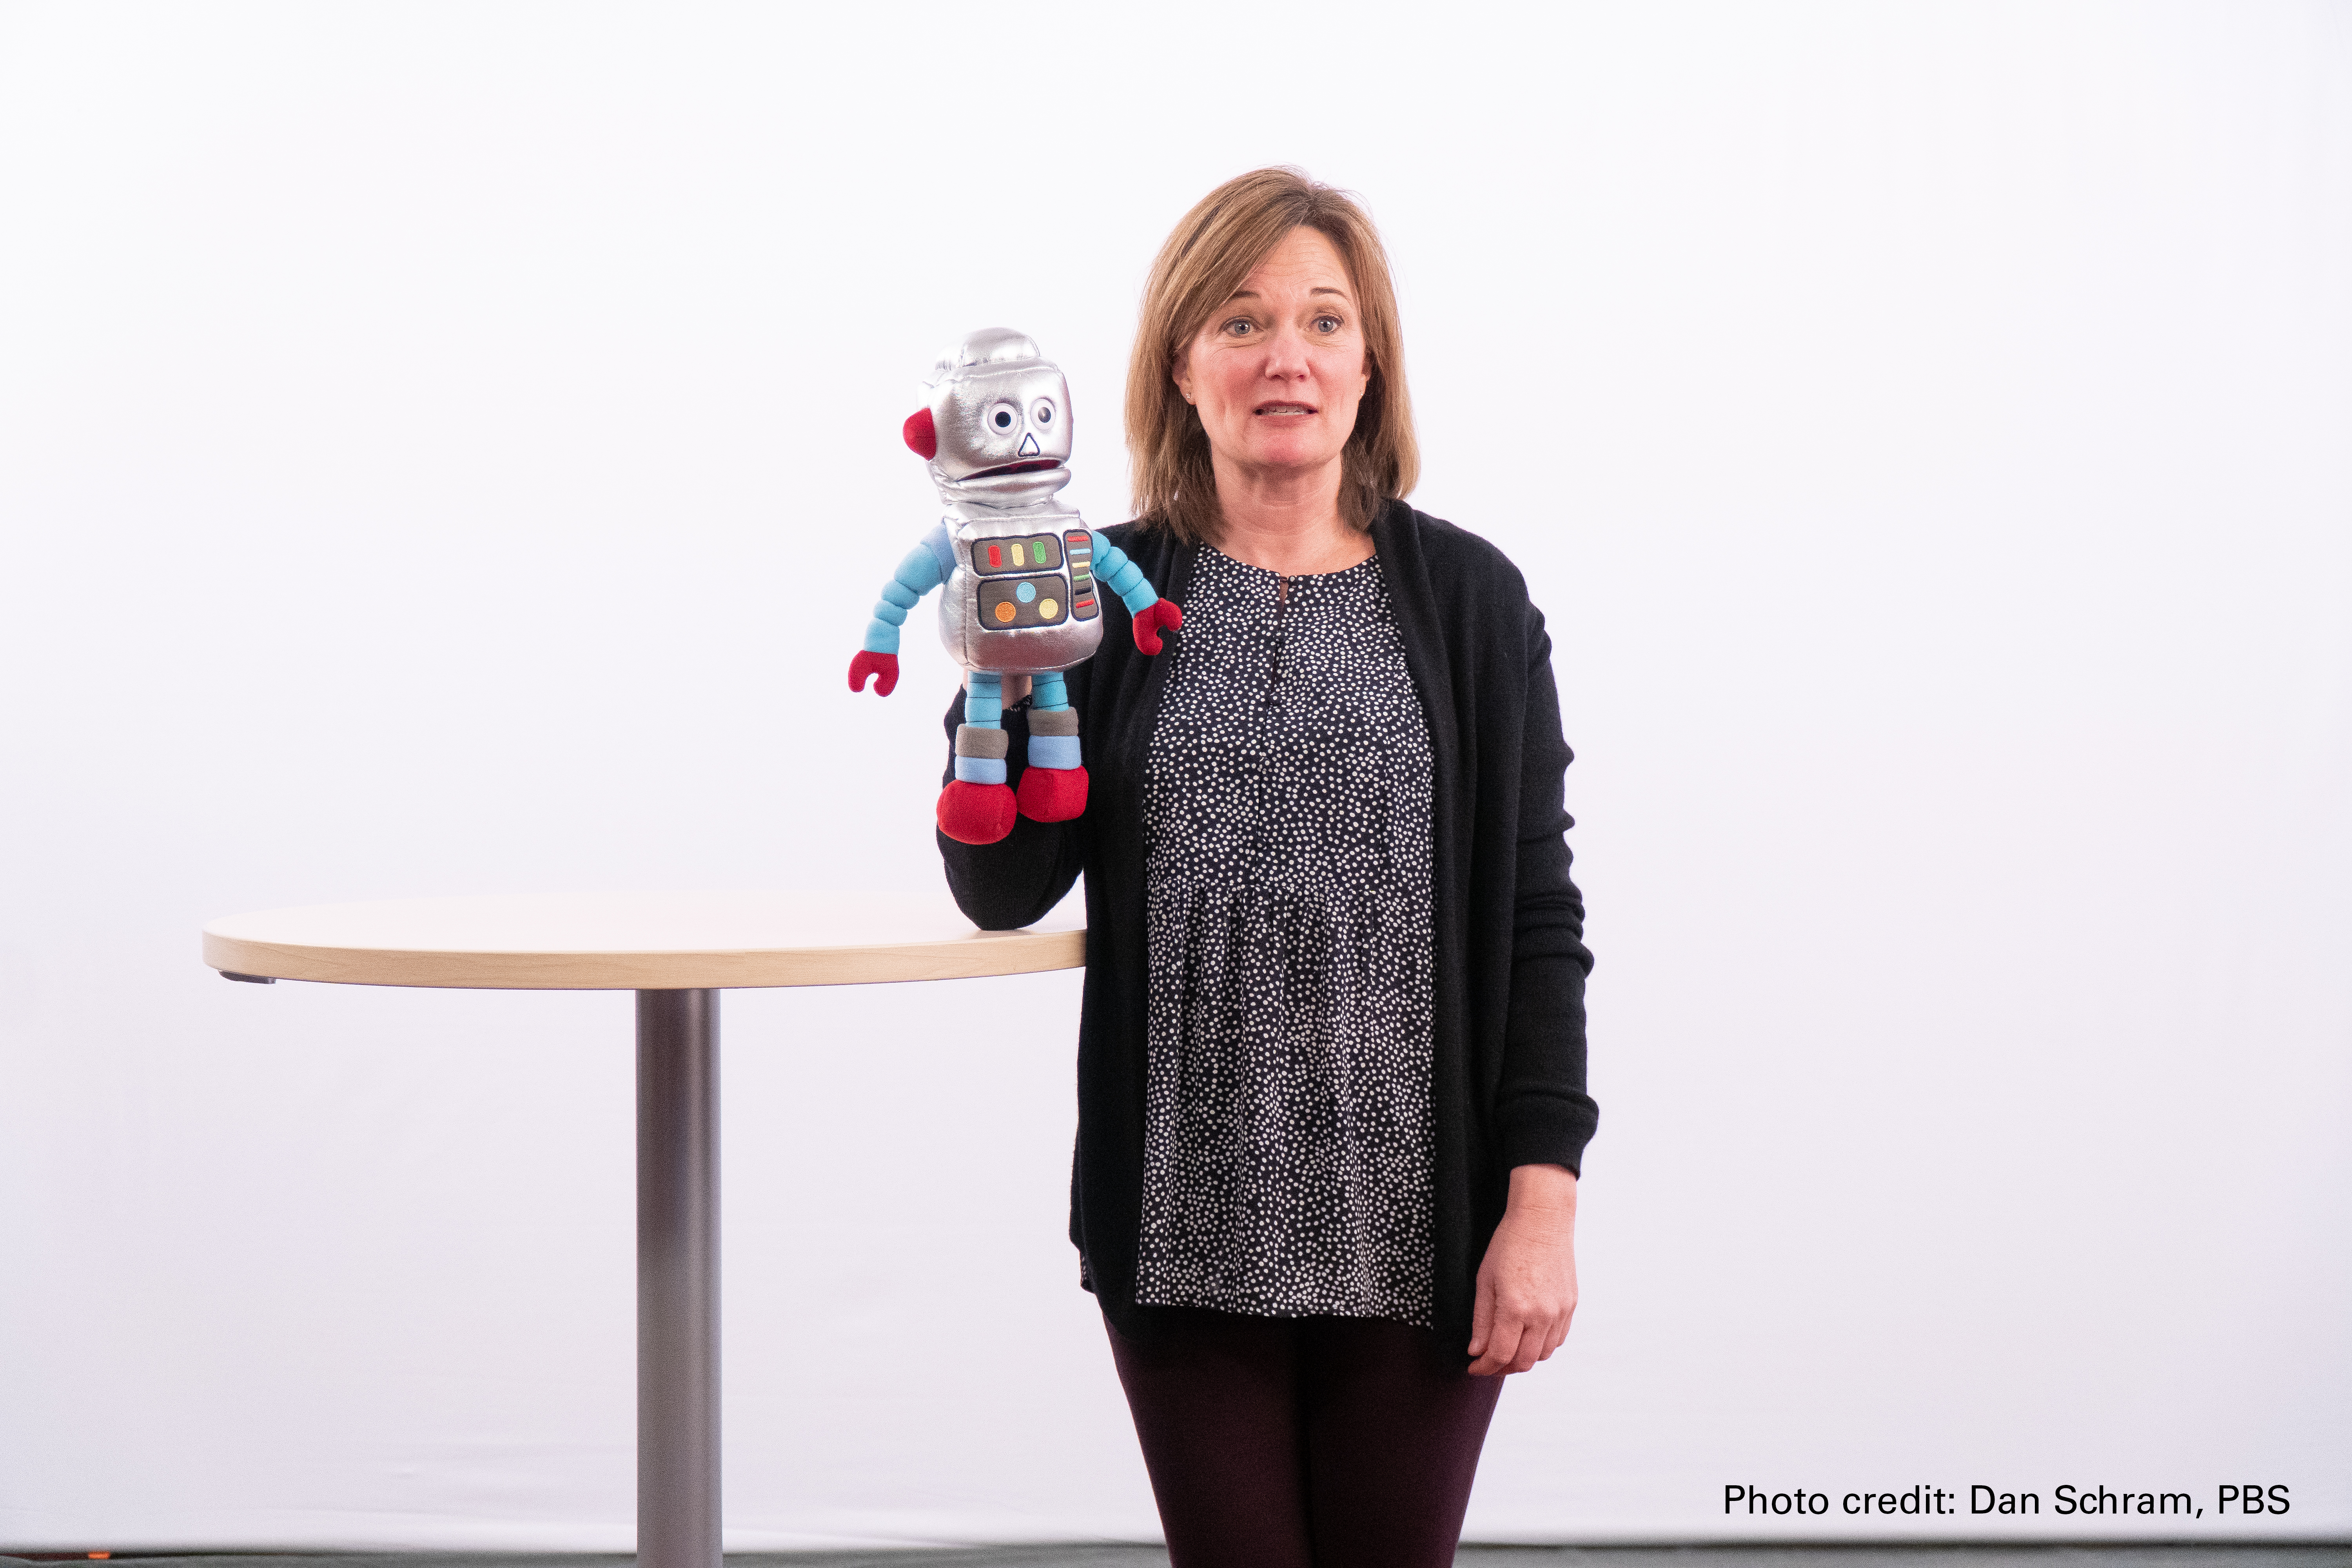 A blonde woman holds up a plush robot toy in front of a white screen